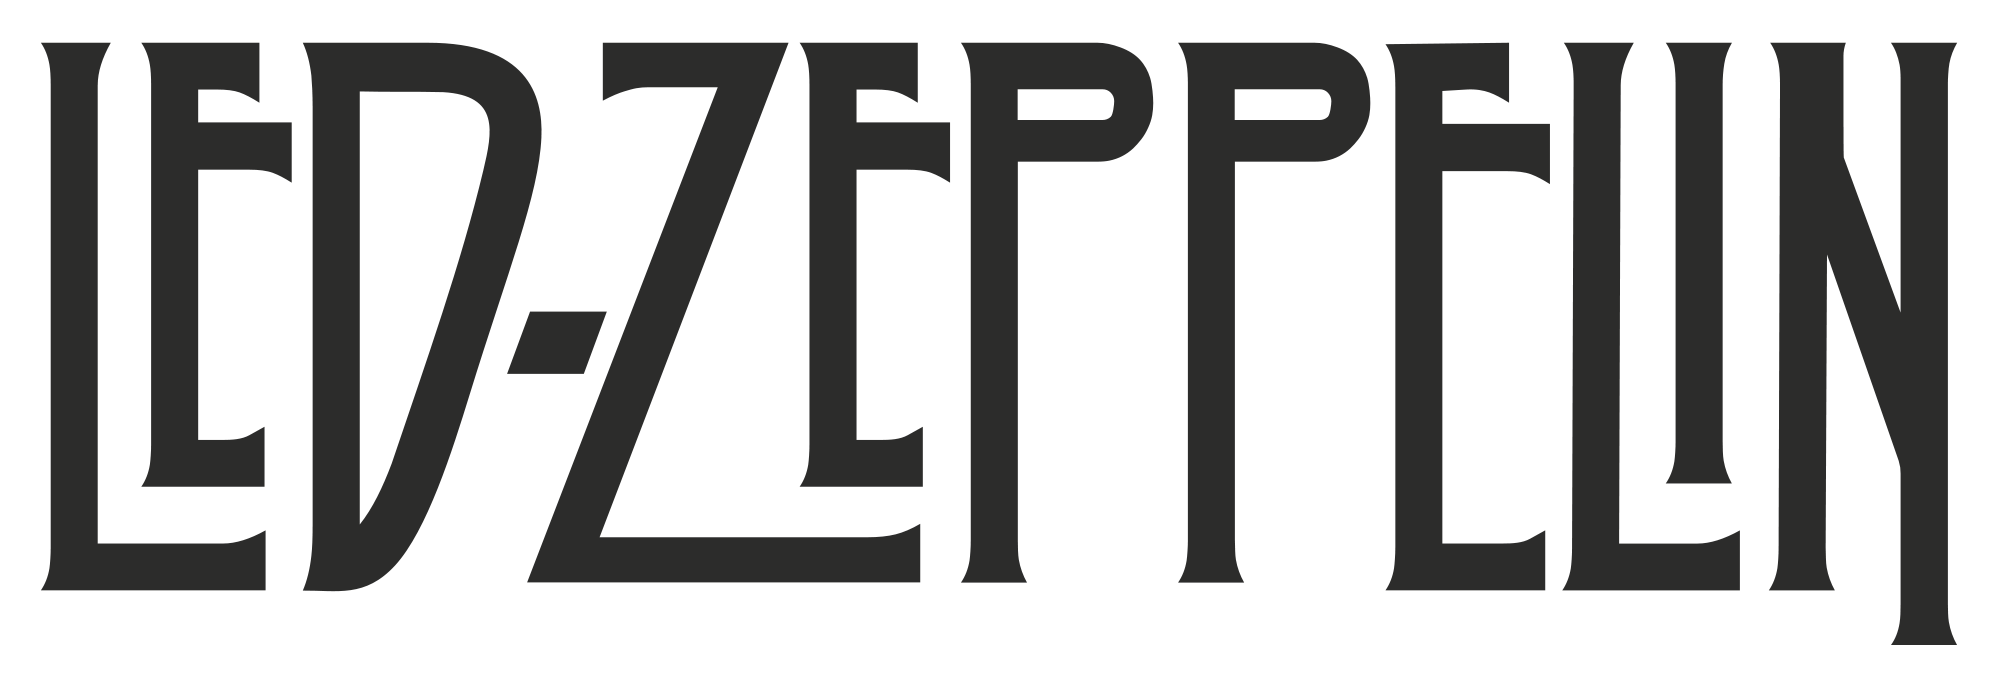 Zeppelin drawing sticker. Led logo symbol meaning